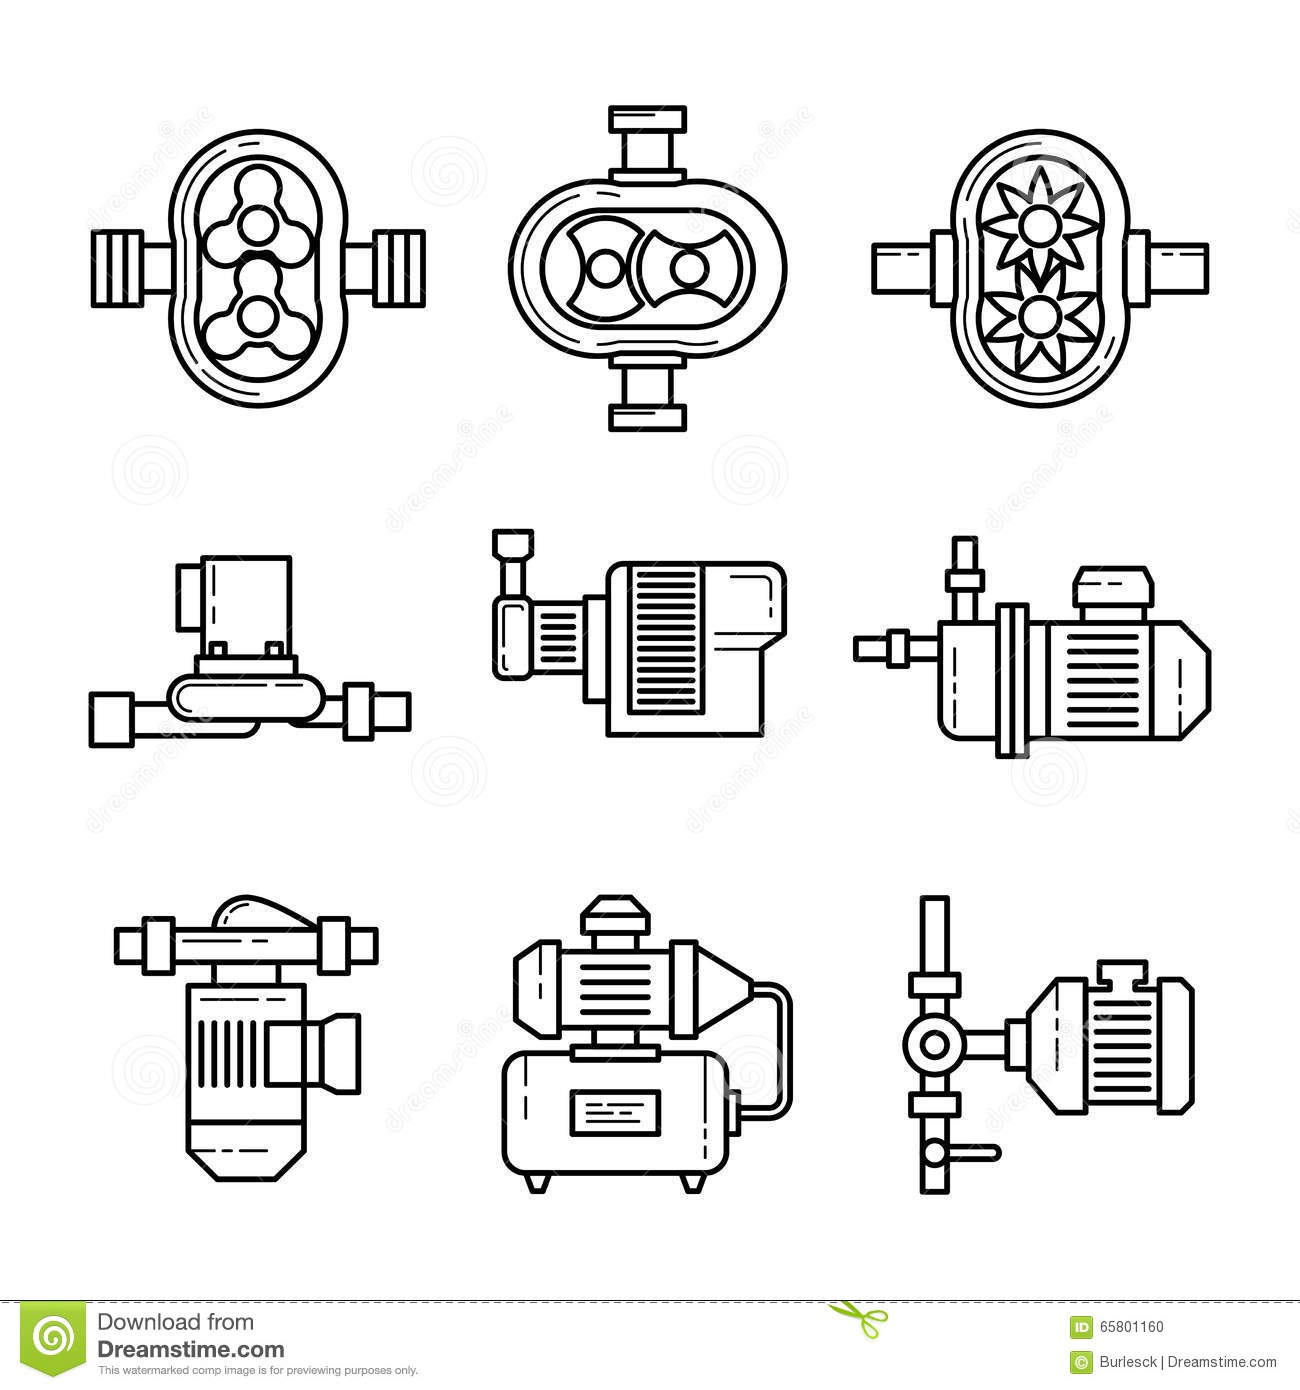 B003X5VKP8 also View All also Stock Illustration Water Pump Vector Line Icons Sets Tube Construction Metal System Pipe Pressure Control Illustration Image65801160 further besafeprod as well 300903195408. on faucet supply line